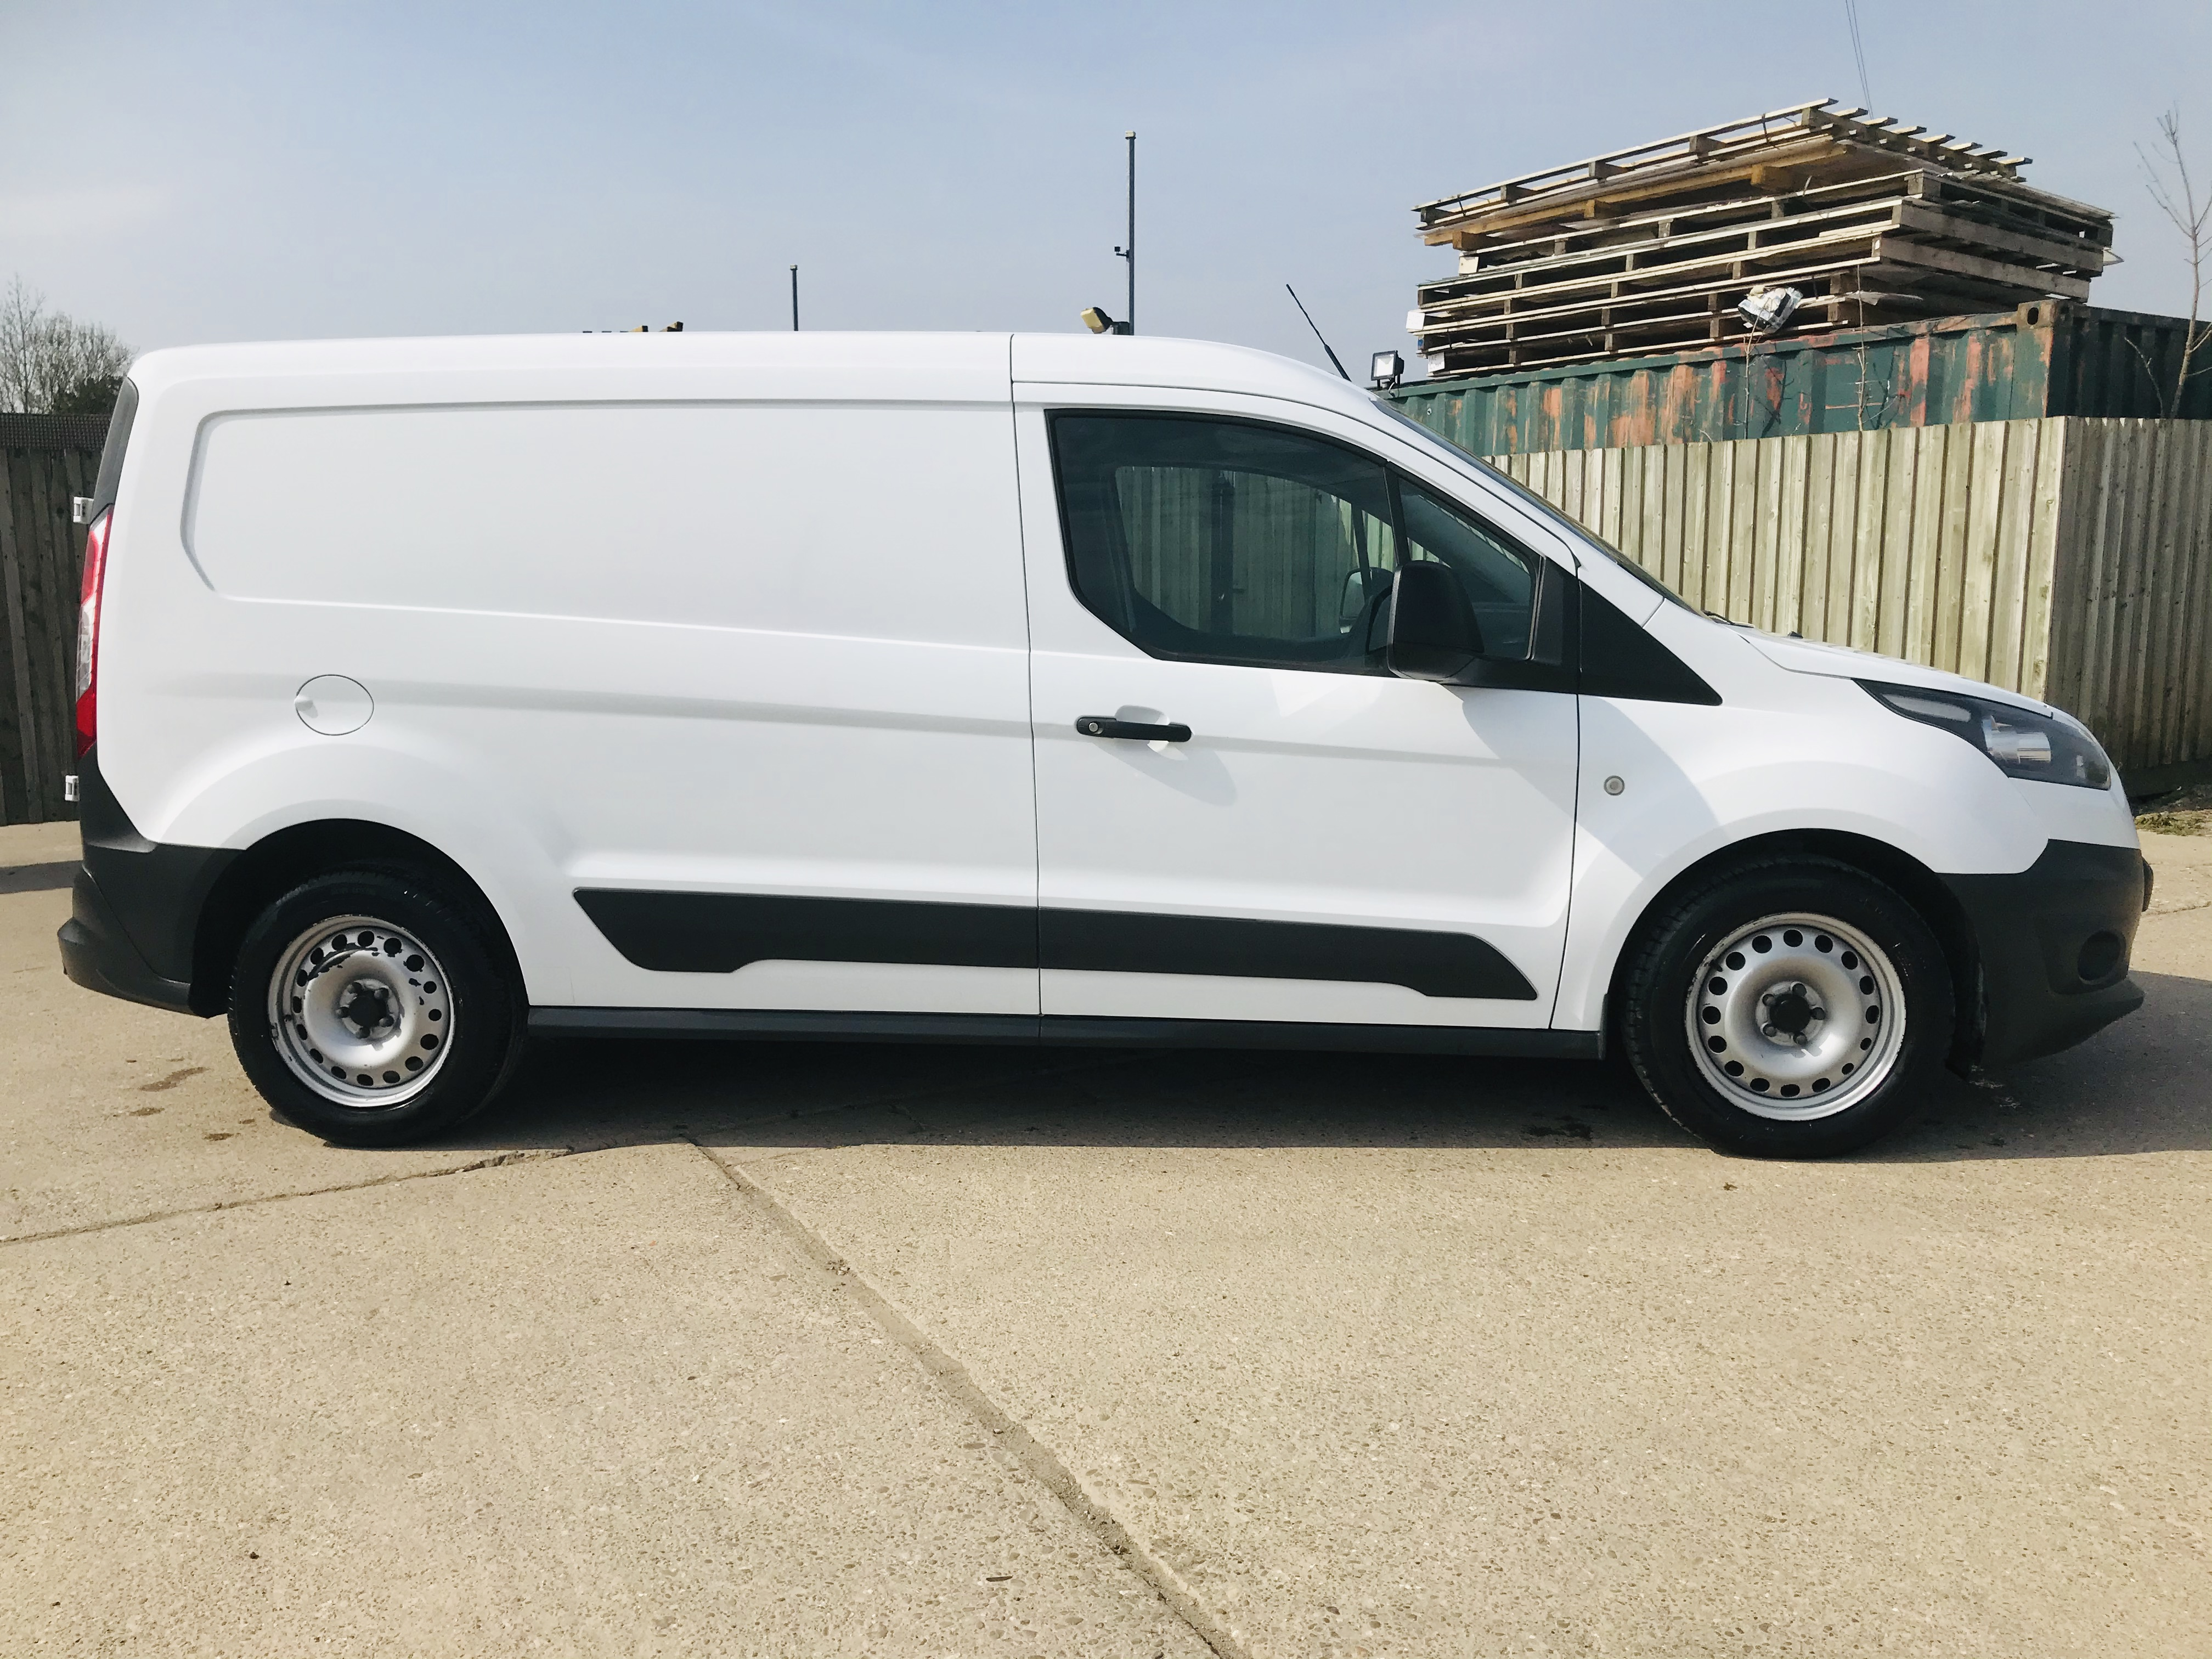 """ON SALE FORD TRANSIT CONNECT 1.6TDCI ECO-TECH 'LWB' 2017 REG - 1 OWNER - FSH - EURO 6""""ULEZ COMPLIANT - Image 12 of 30"""